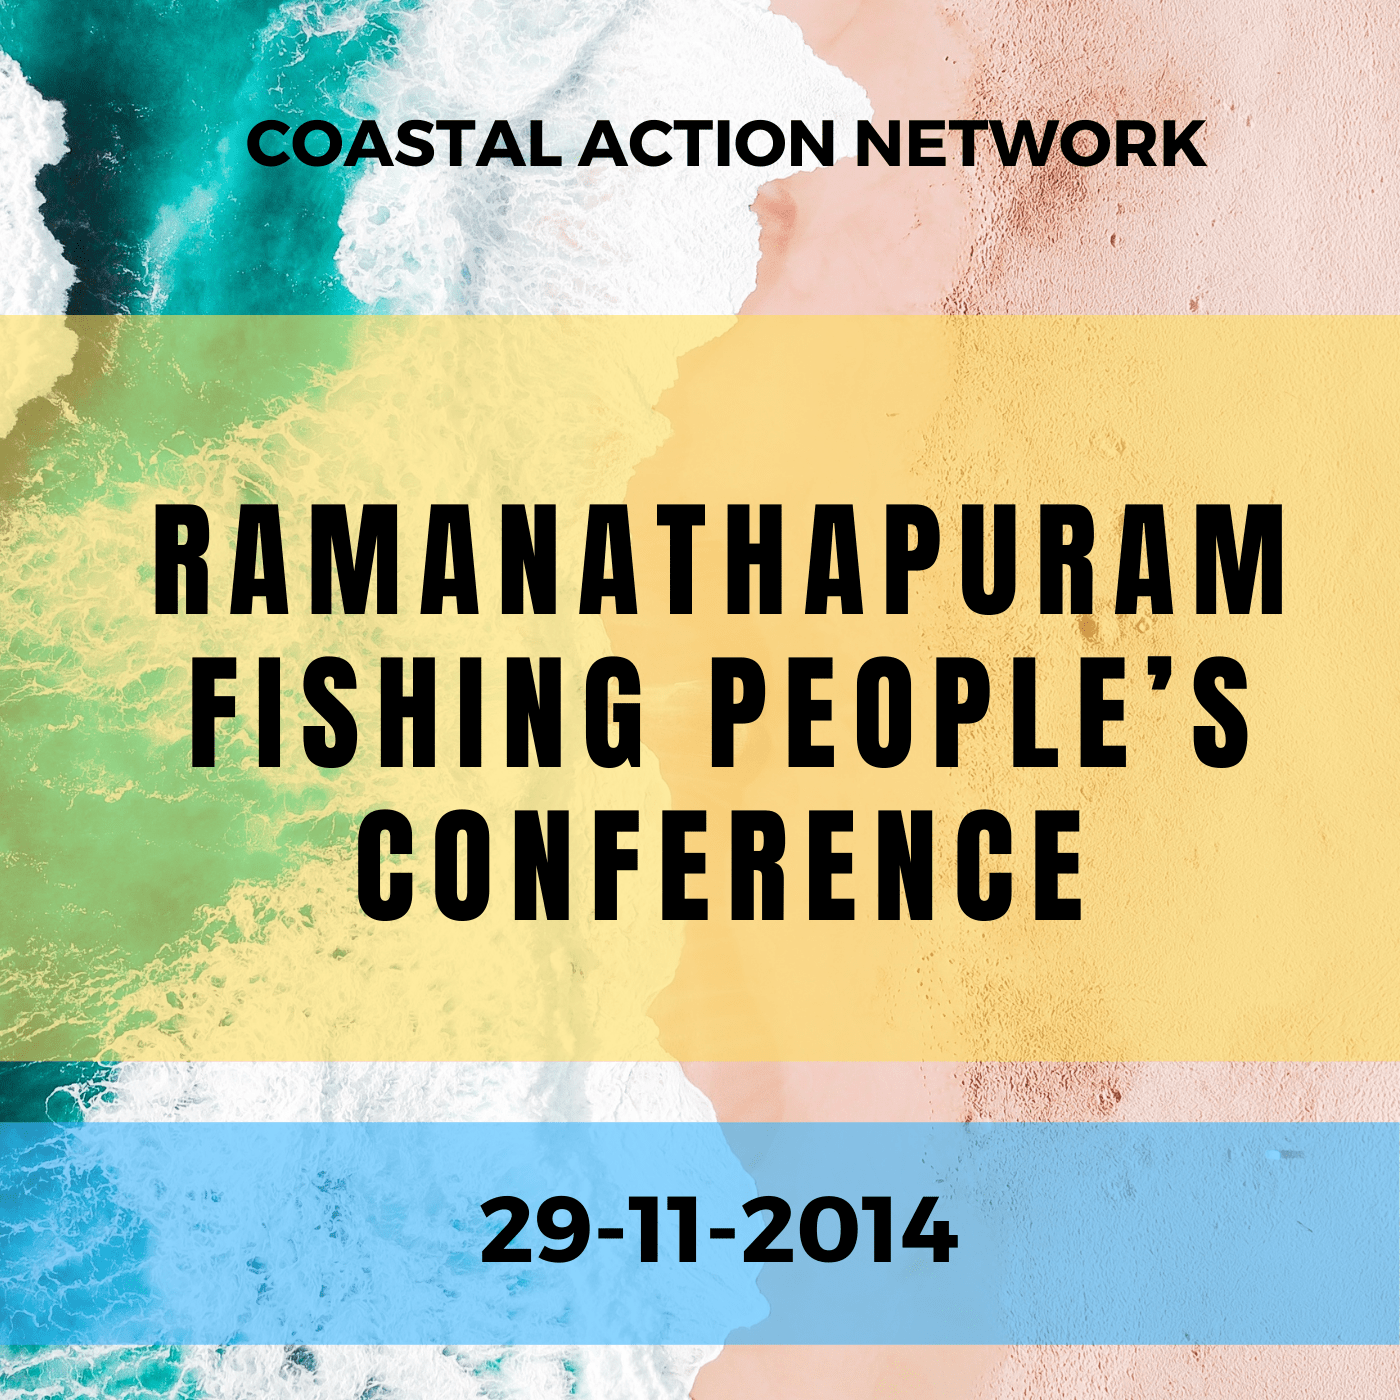 Ramanathapuram Fishing People's Conference on 29-11-2014, Ramanathapuram